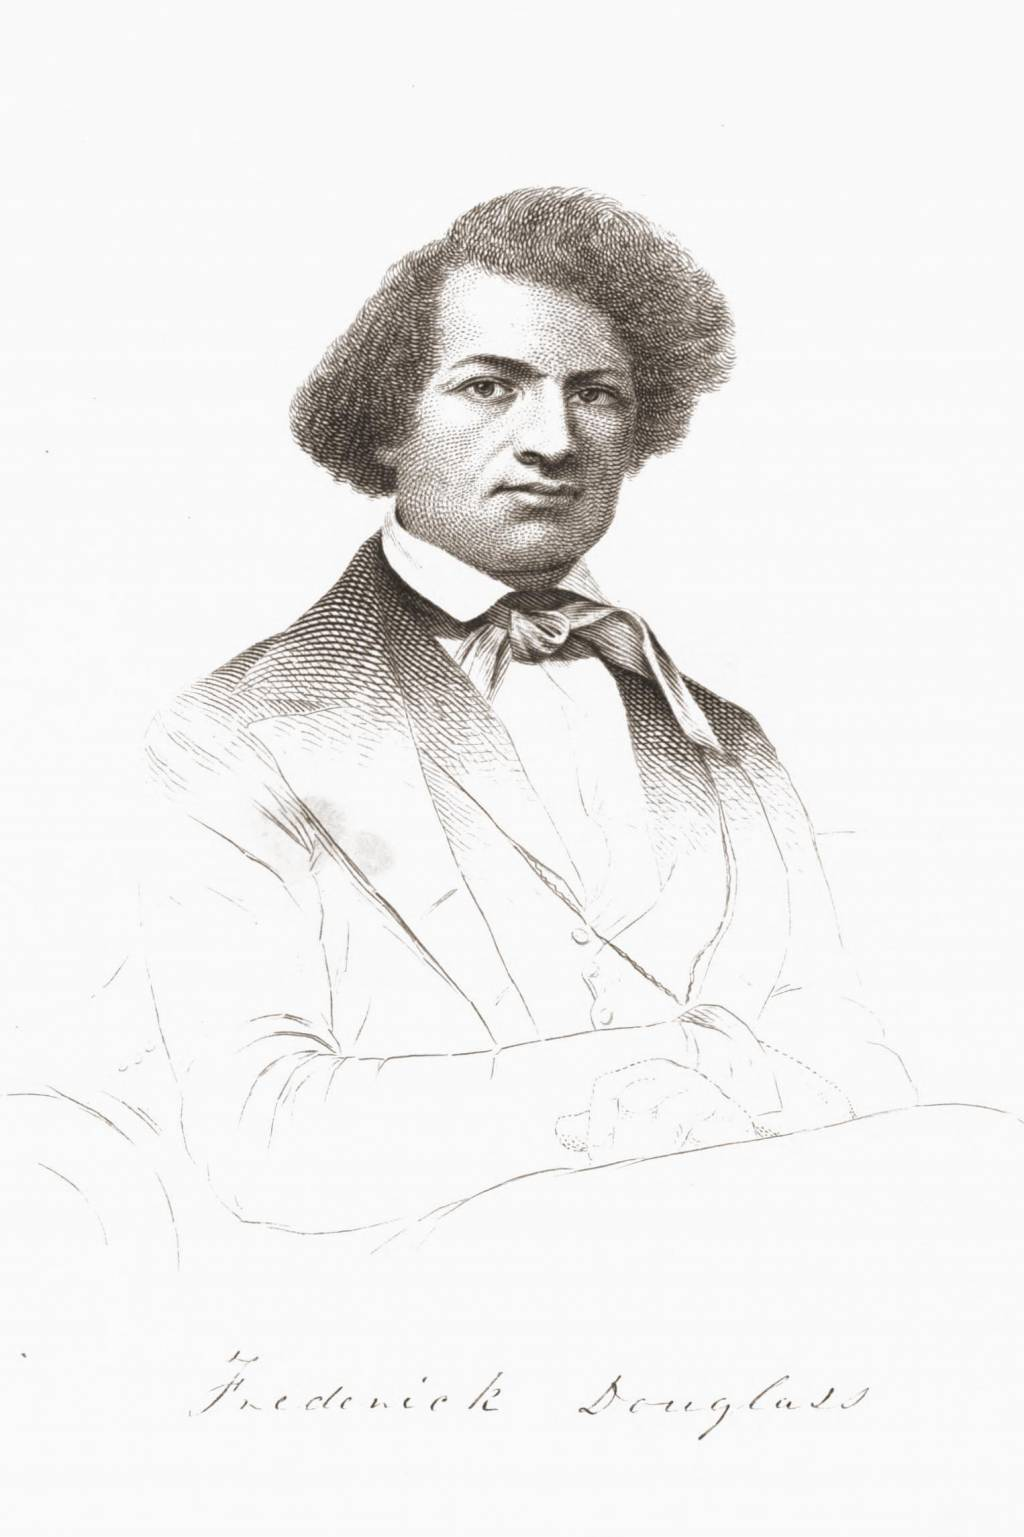 fredrick douglass essay a scaffolding support system for english  narrative of the life of frederick douglass essay questions narrative of the life of frederick douglass